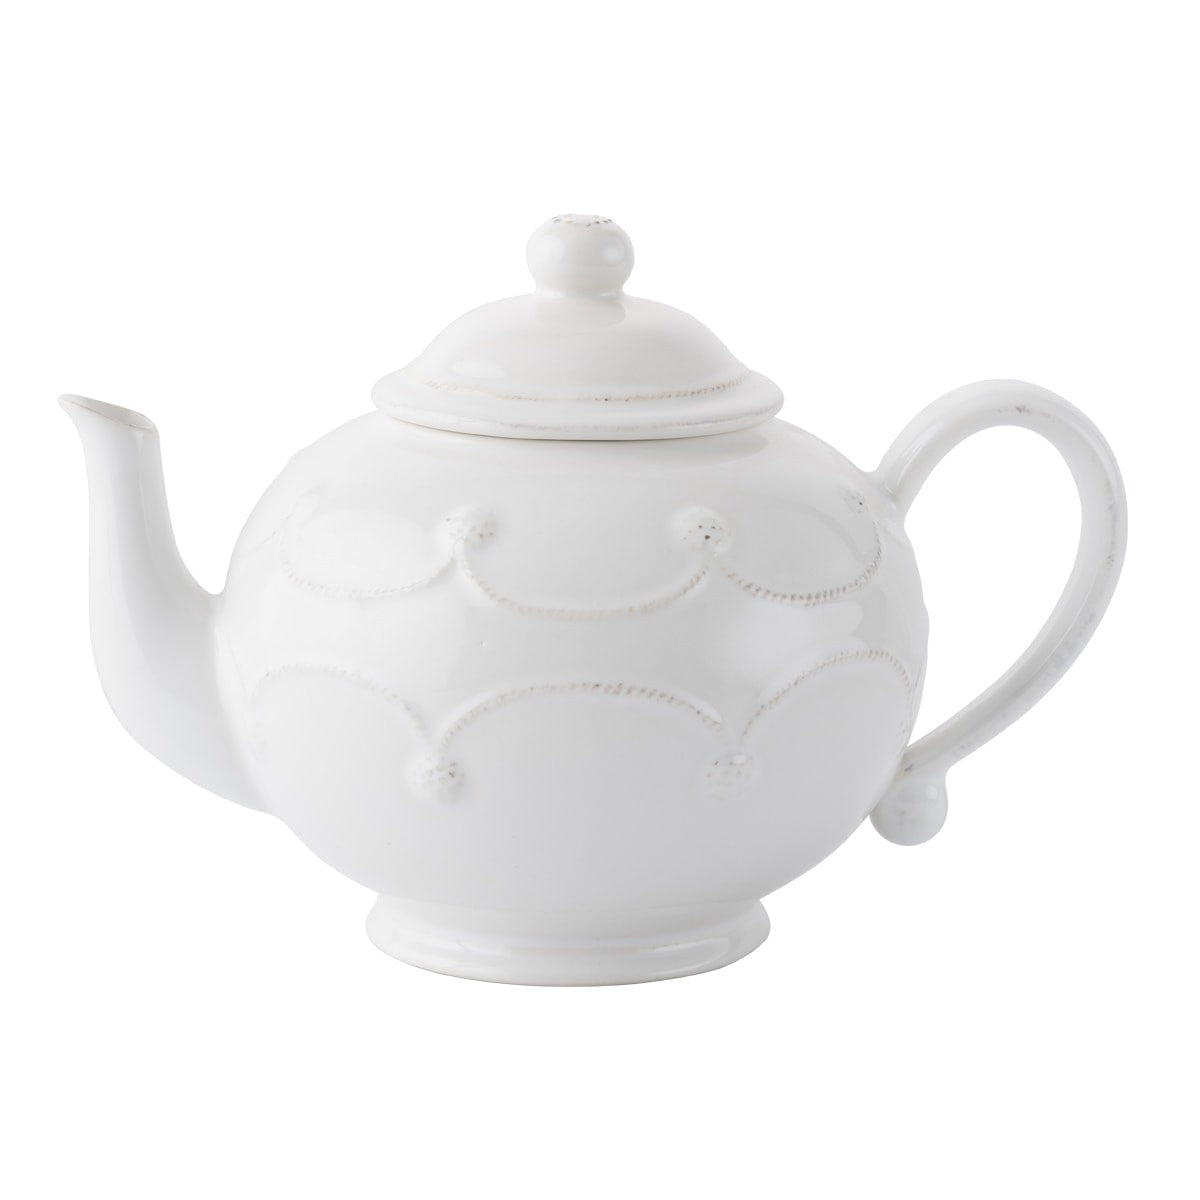 Juliska B&T Teapot